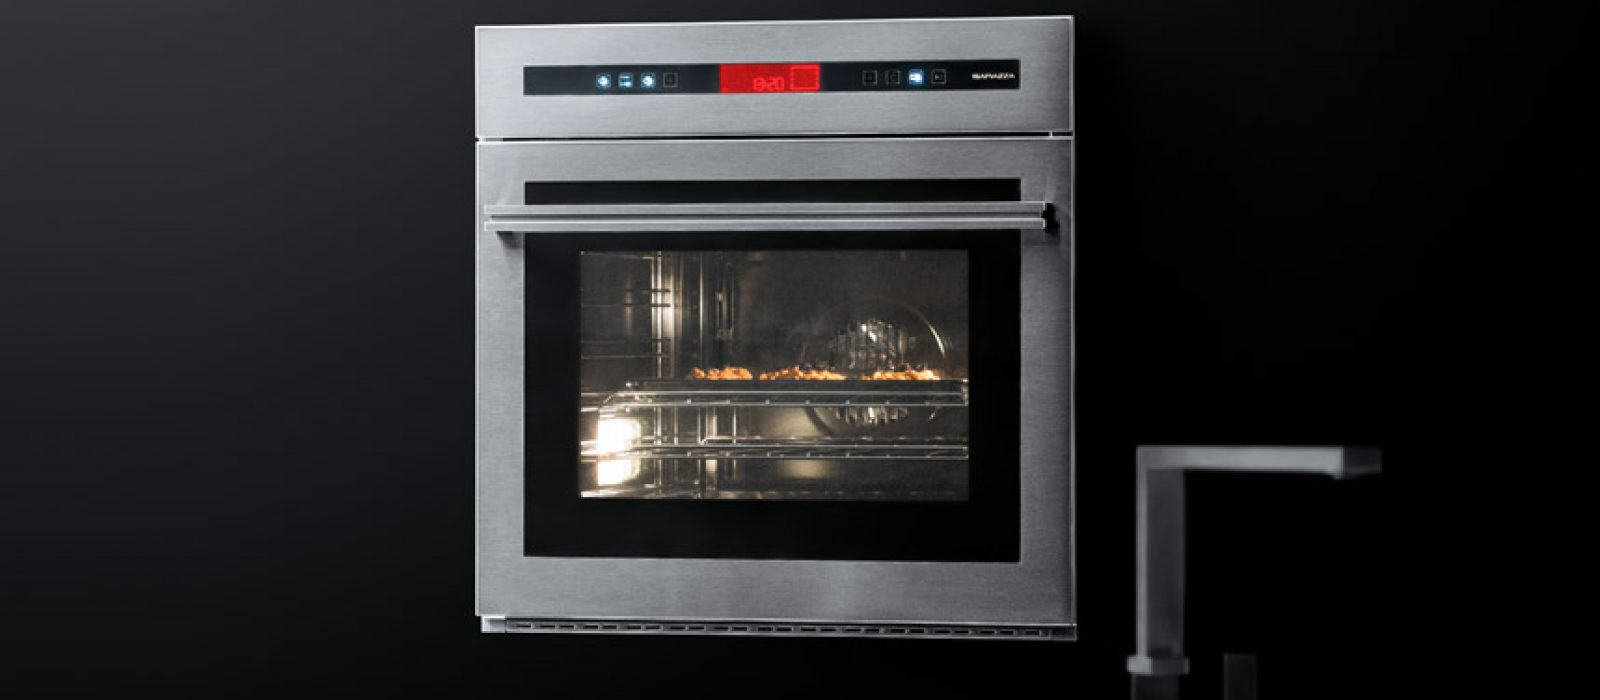 FORNO S TOUCH CONTROL